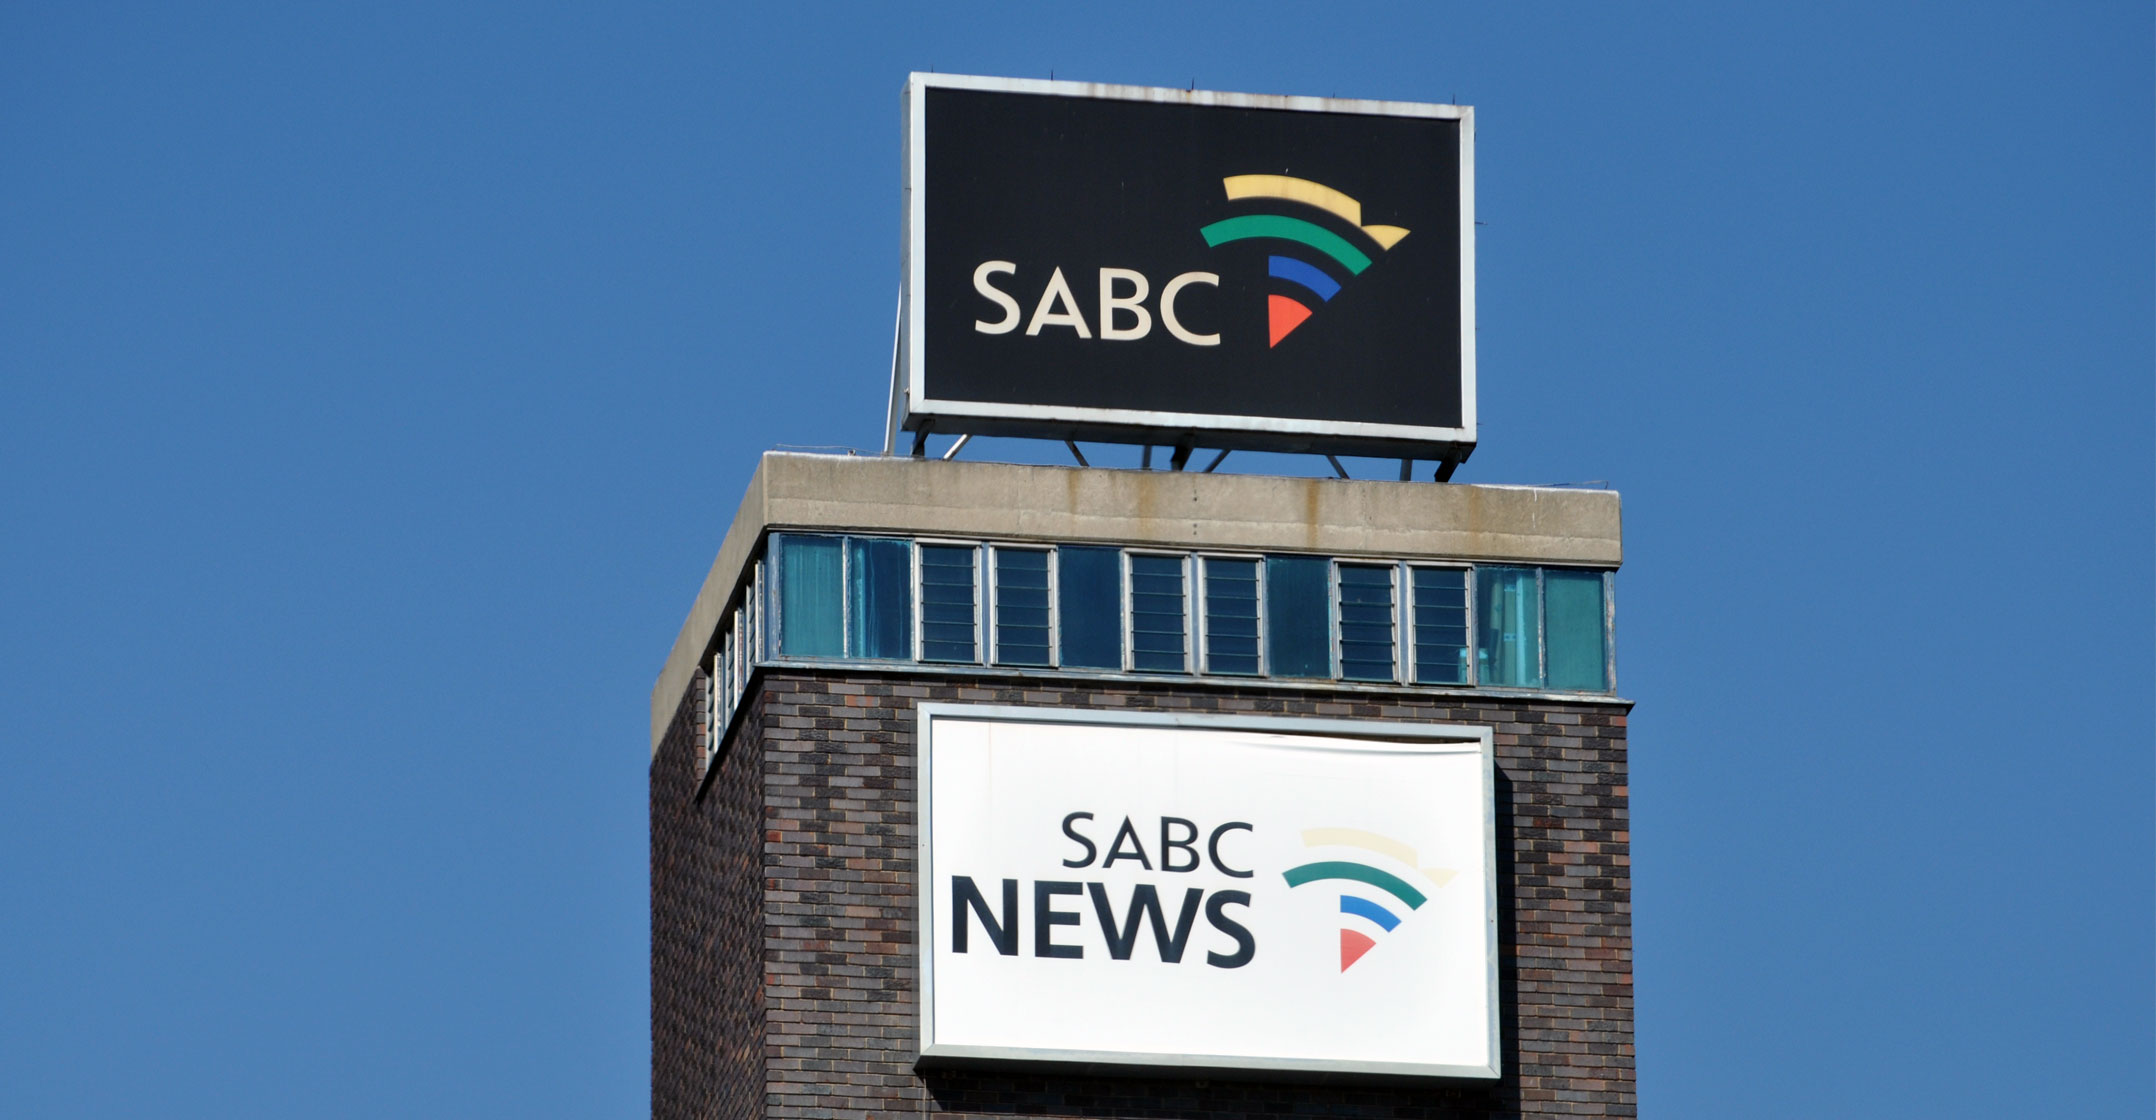 Facing legal action, Zuma finally appoints SABC board